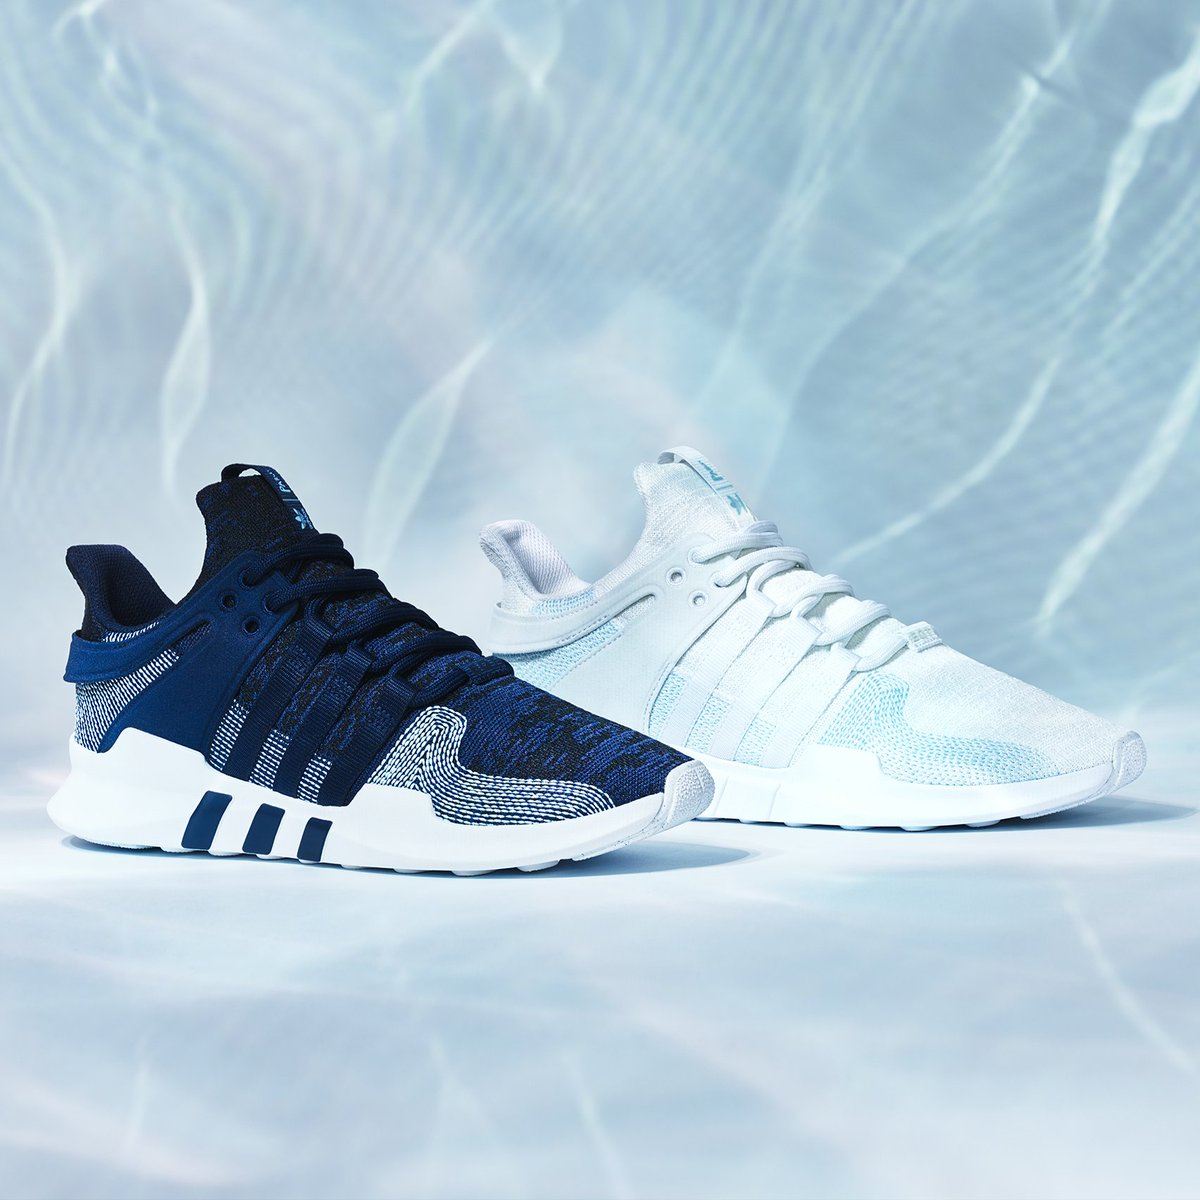 quality design caf78 96673 The EQT Support ADV  using Parley Ocean Plastic  adidasOriginals and   Parleyxxx unite to turn a problem into progress.  adidasParley   EQTpic.twitter.com  ...